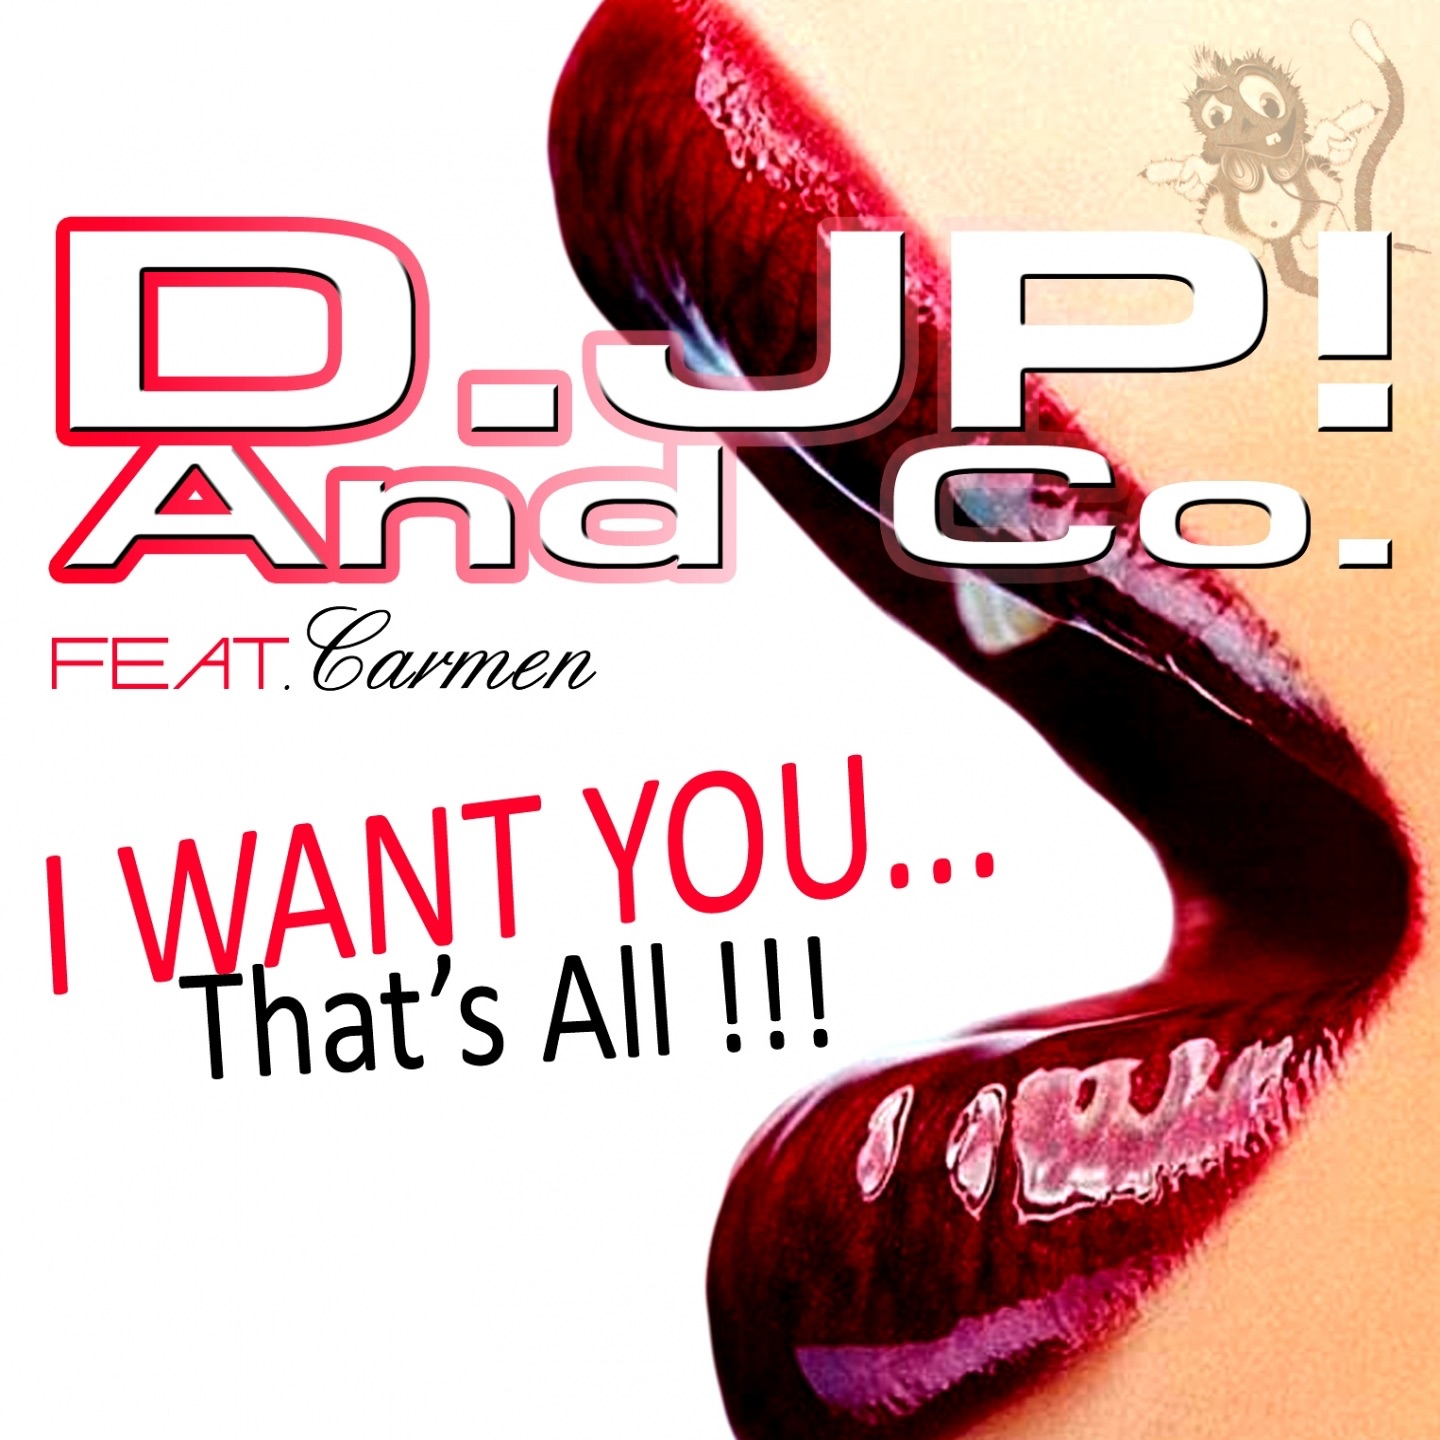 I Want You... That's All (Damage Dancefloor Broken Remix) [feat. Carmen]